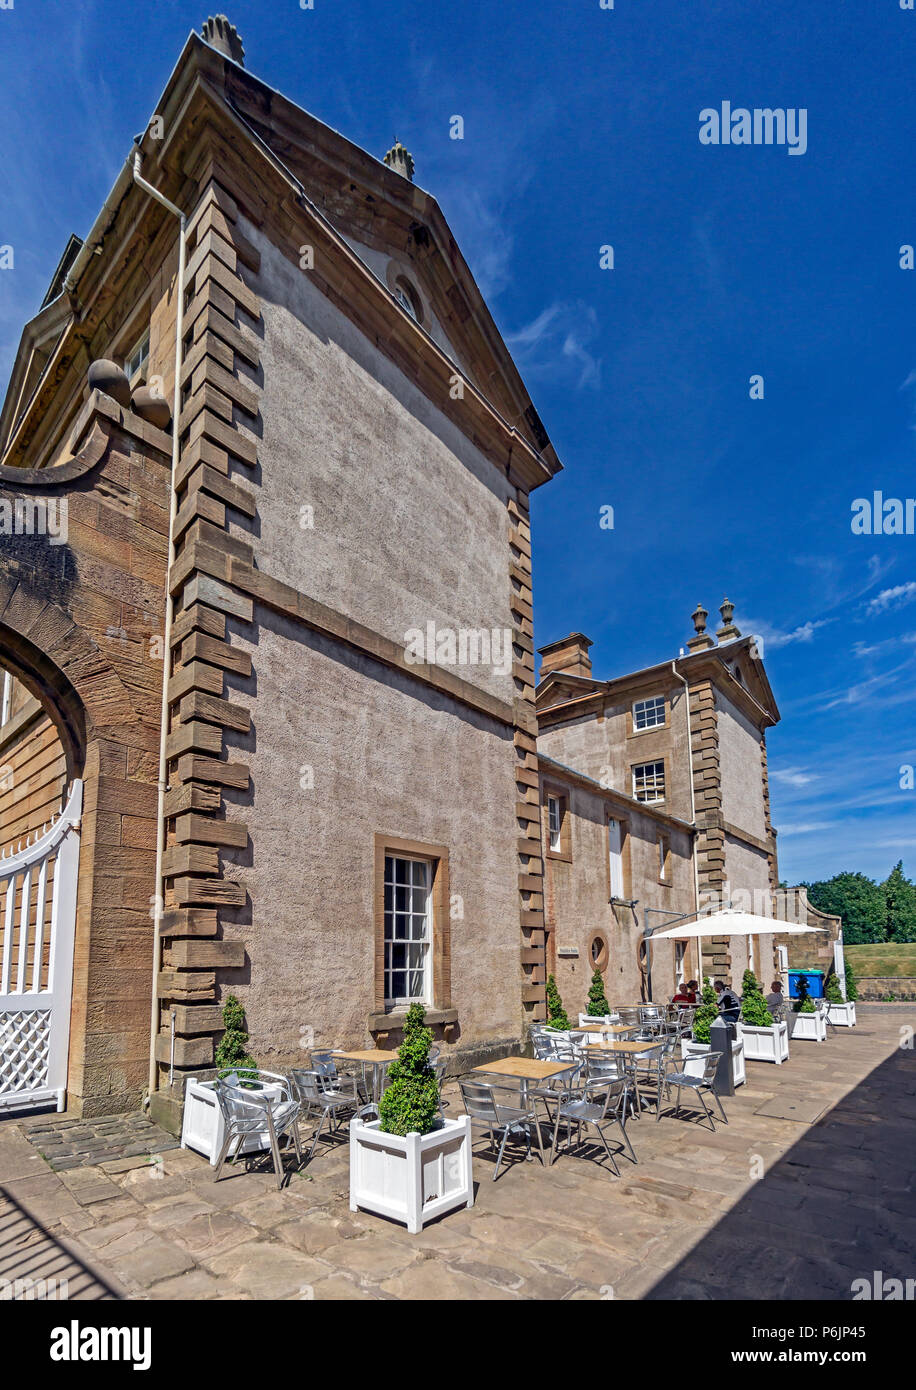 Rear view of Chatelherault Estate in Chatelherault Country Park Ferniegair Hamilton Lanarkshire Scotland UK with outside cafe seating - Stock Image